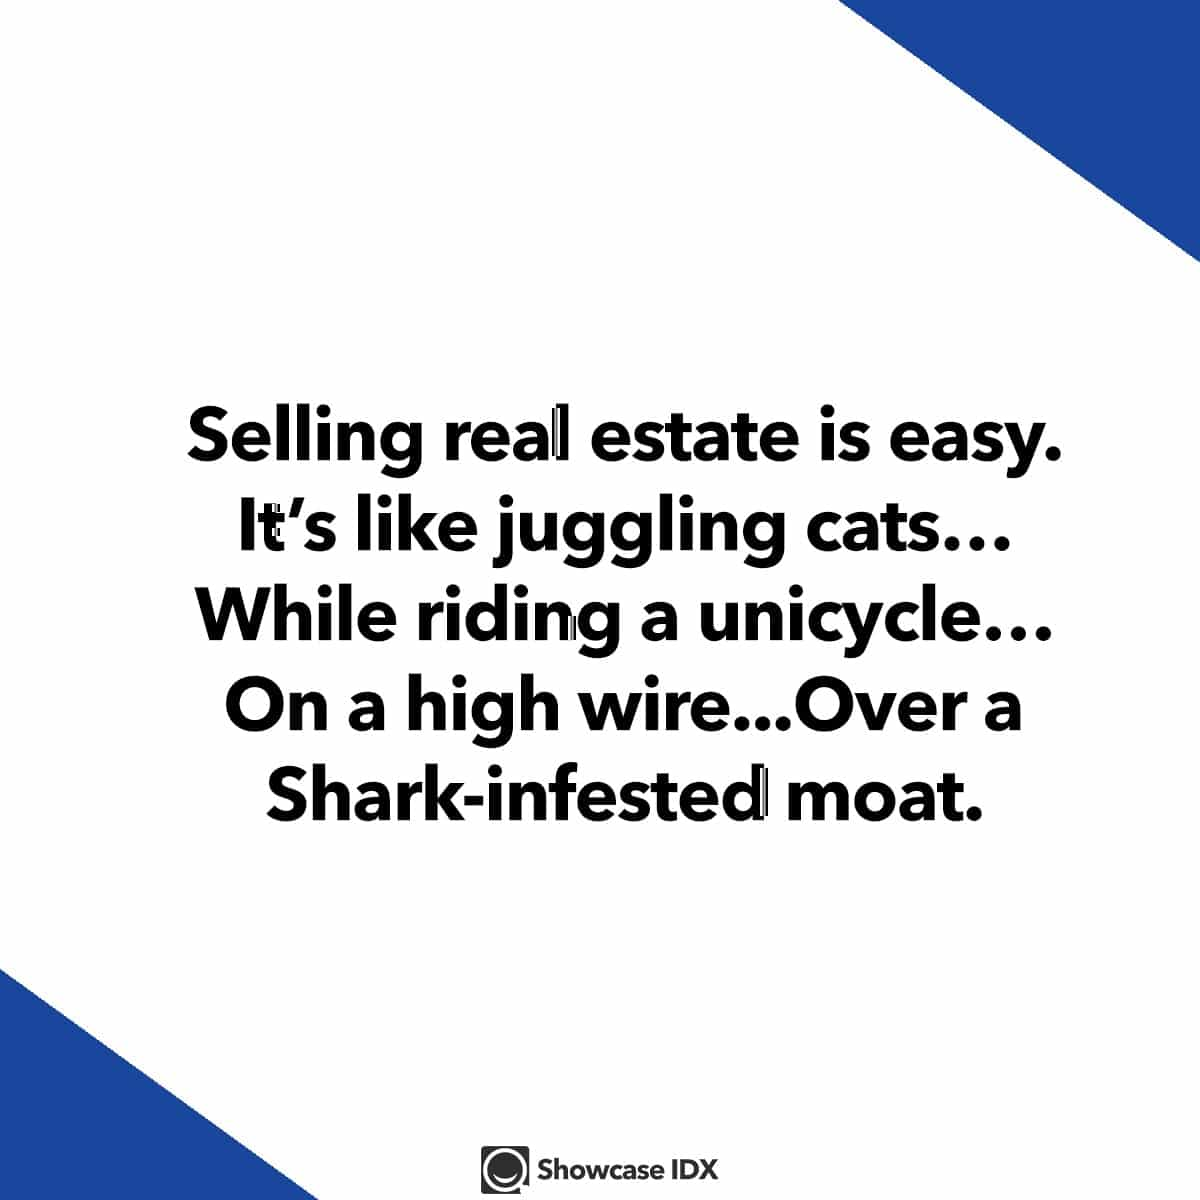 funny real estate quotes - Selling real estate is easy - It's like juggling cat while riding a unicycle on a high wire - real estate meme - lighter side of real estate